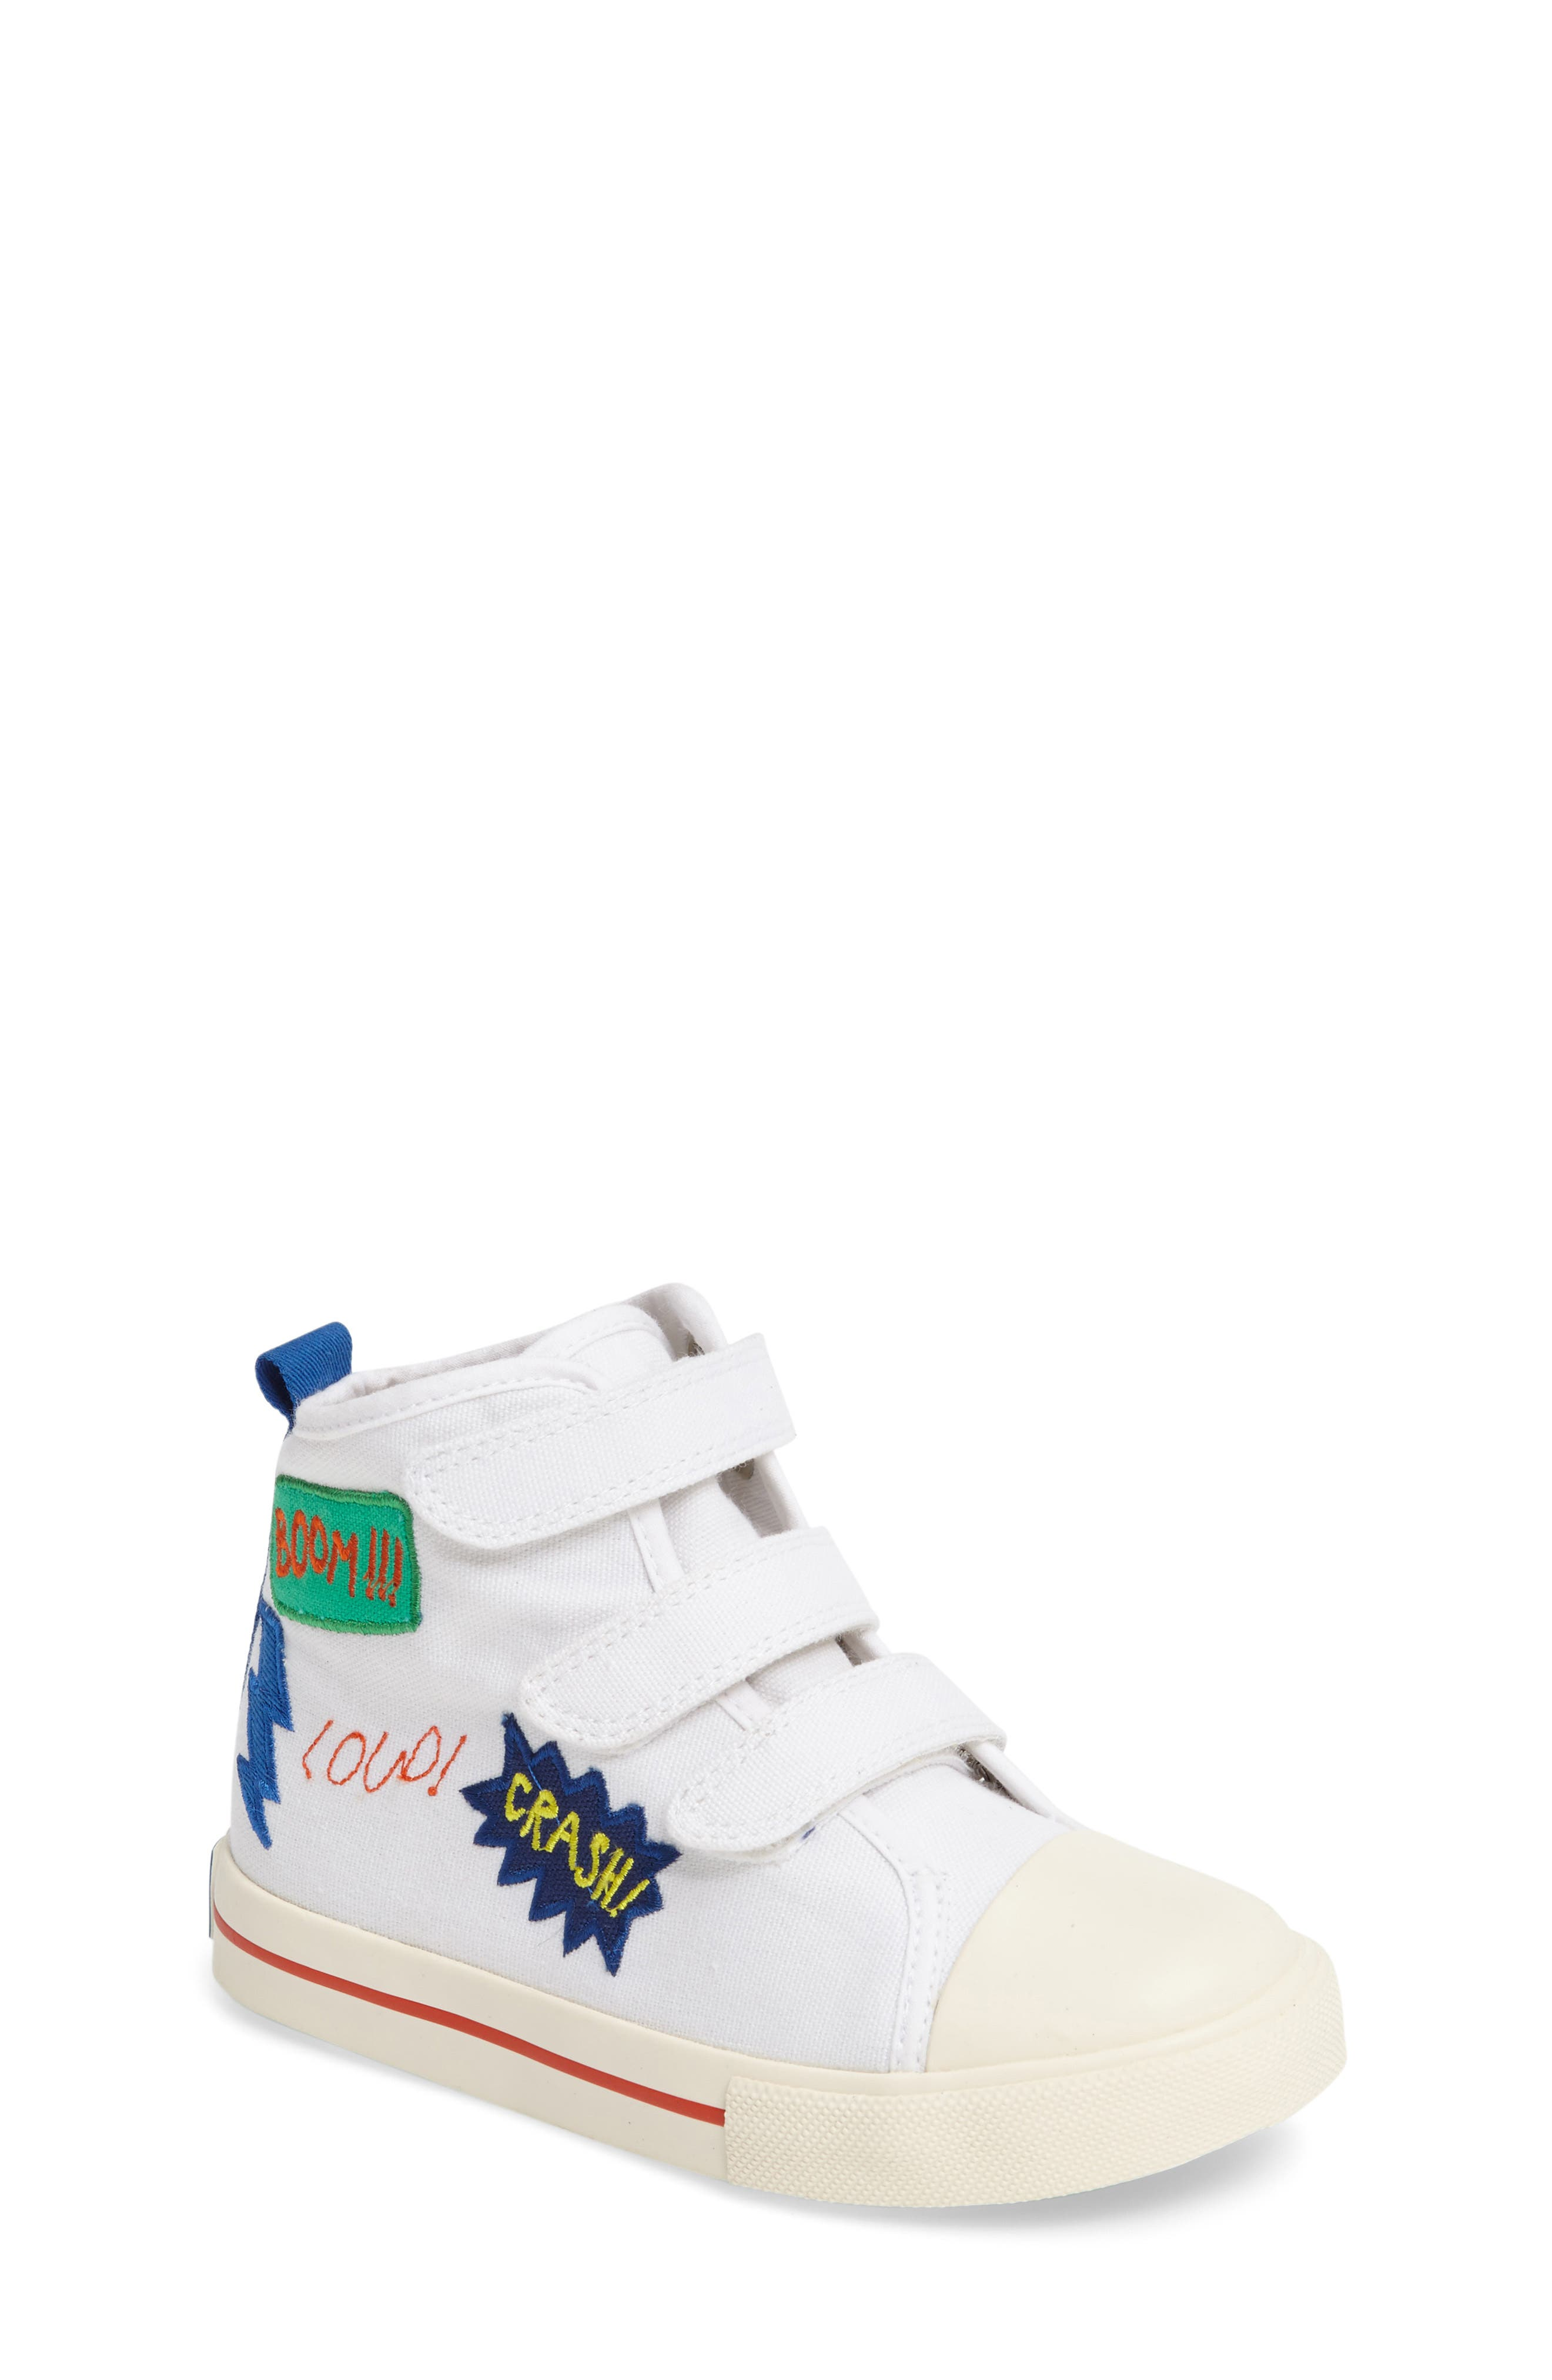 High Top Sneaker,                         Main,                         color, White